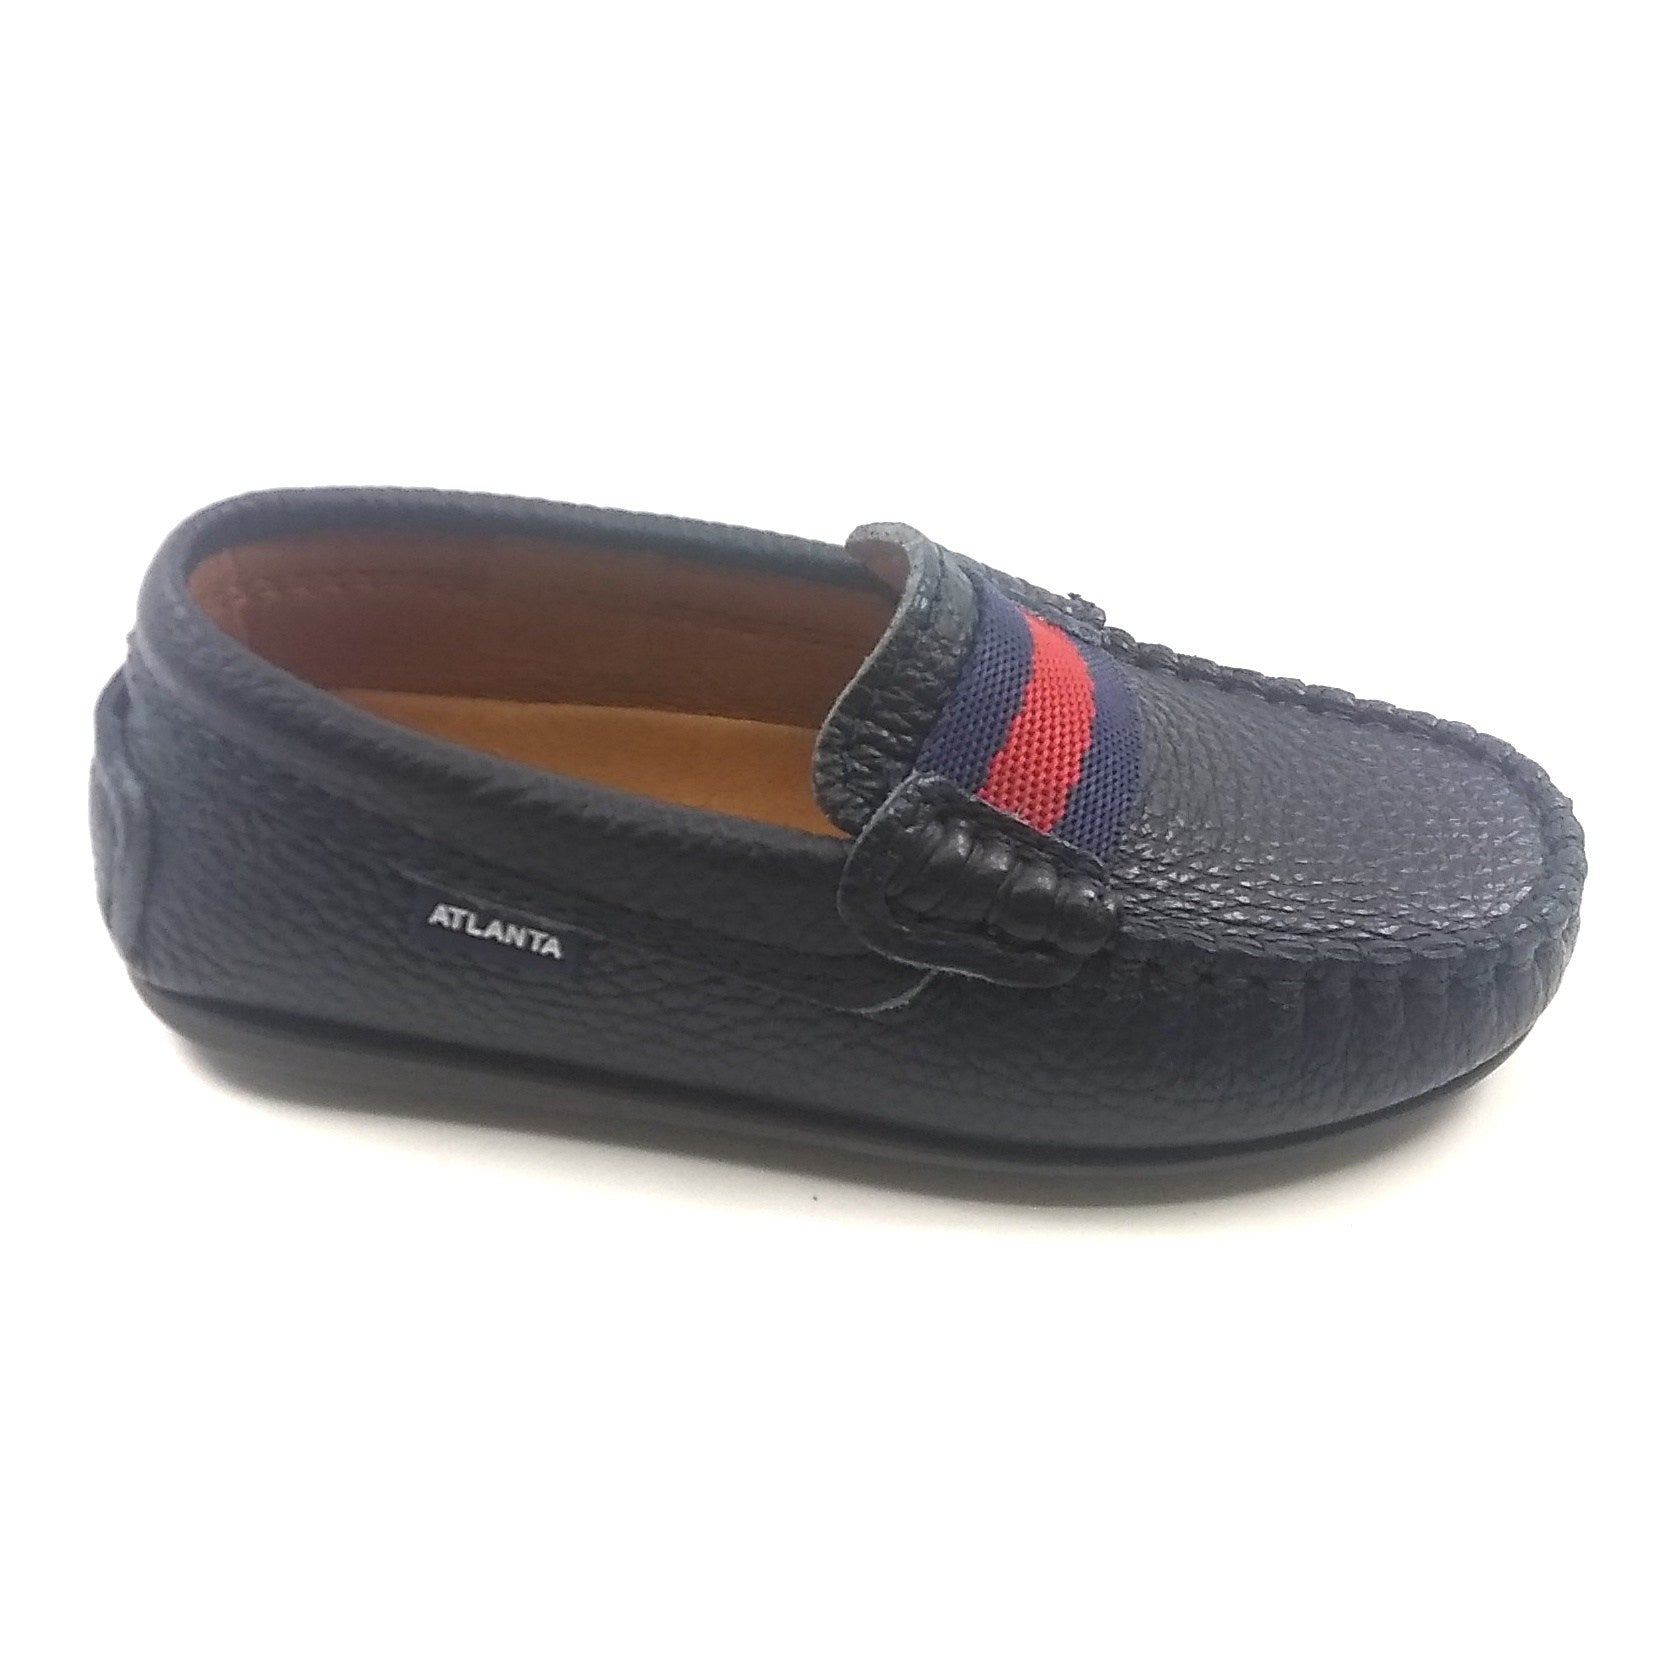 Atlanta Mocassin Navy Strap Loafer